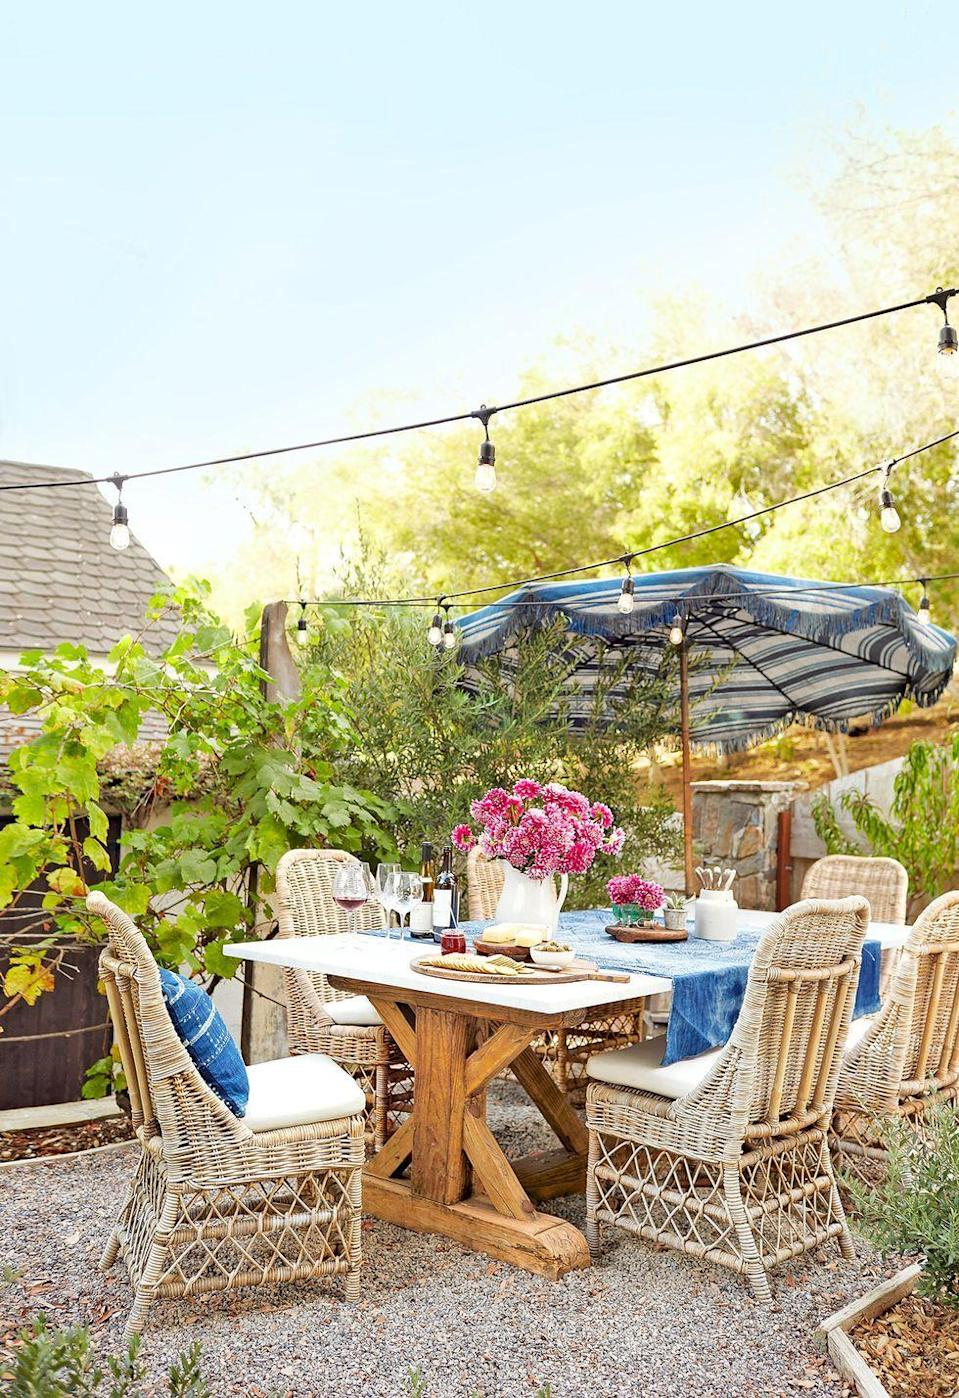 """<p>Make your small space feel even cozier by stringing lights from one side of the yard to the other. That way, you won't have to use up coveted floor space with standing lamps. </p><p><strong>RELATED: </strong><a href=""""https://www.goodhousekeeping.com/home/gardening/tips/g1226/small-outdoor-space-decor/"""" rel=""""nofollow noopener"""" target=""""_blank"""" data-ylk=""""slk:How to Decorate Your Small Patio"""" class=""""link rapid-noclick-resp"""">How to Decorate Your Small Patio </a></p>"""